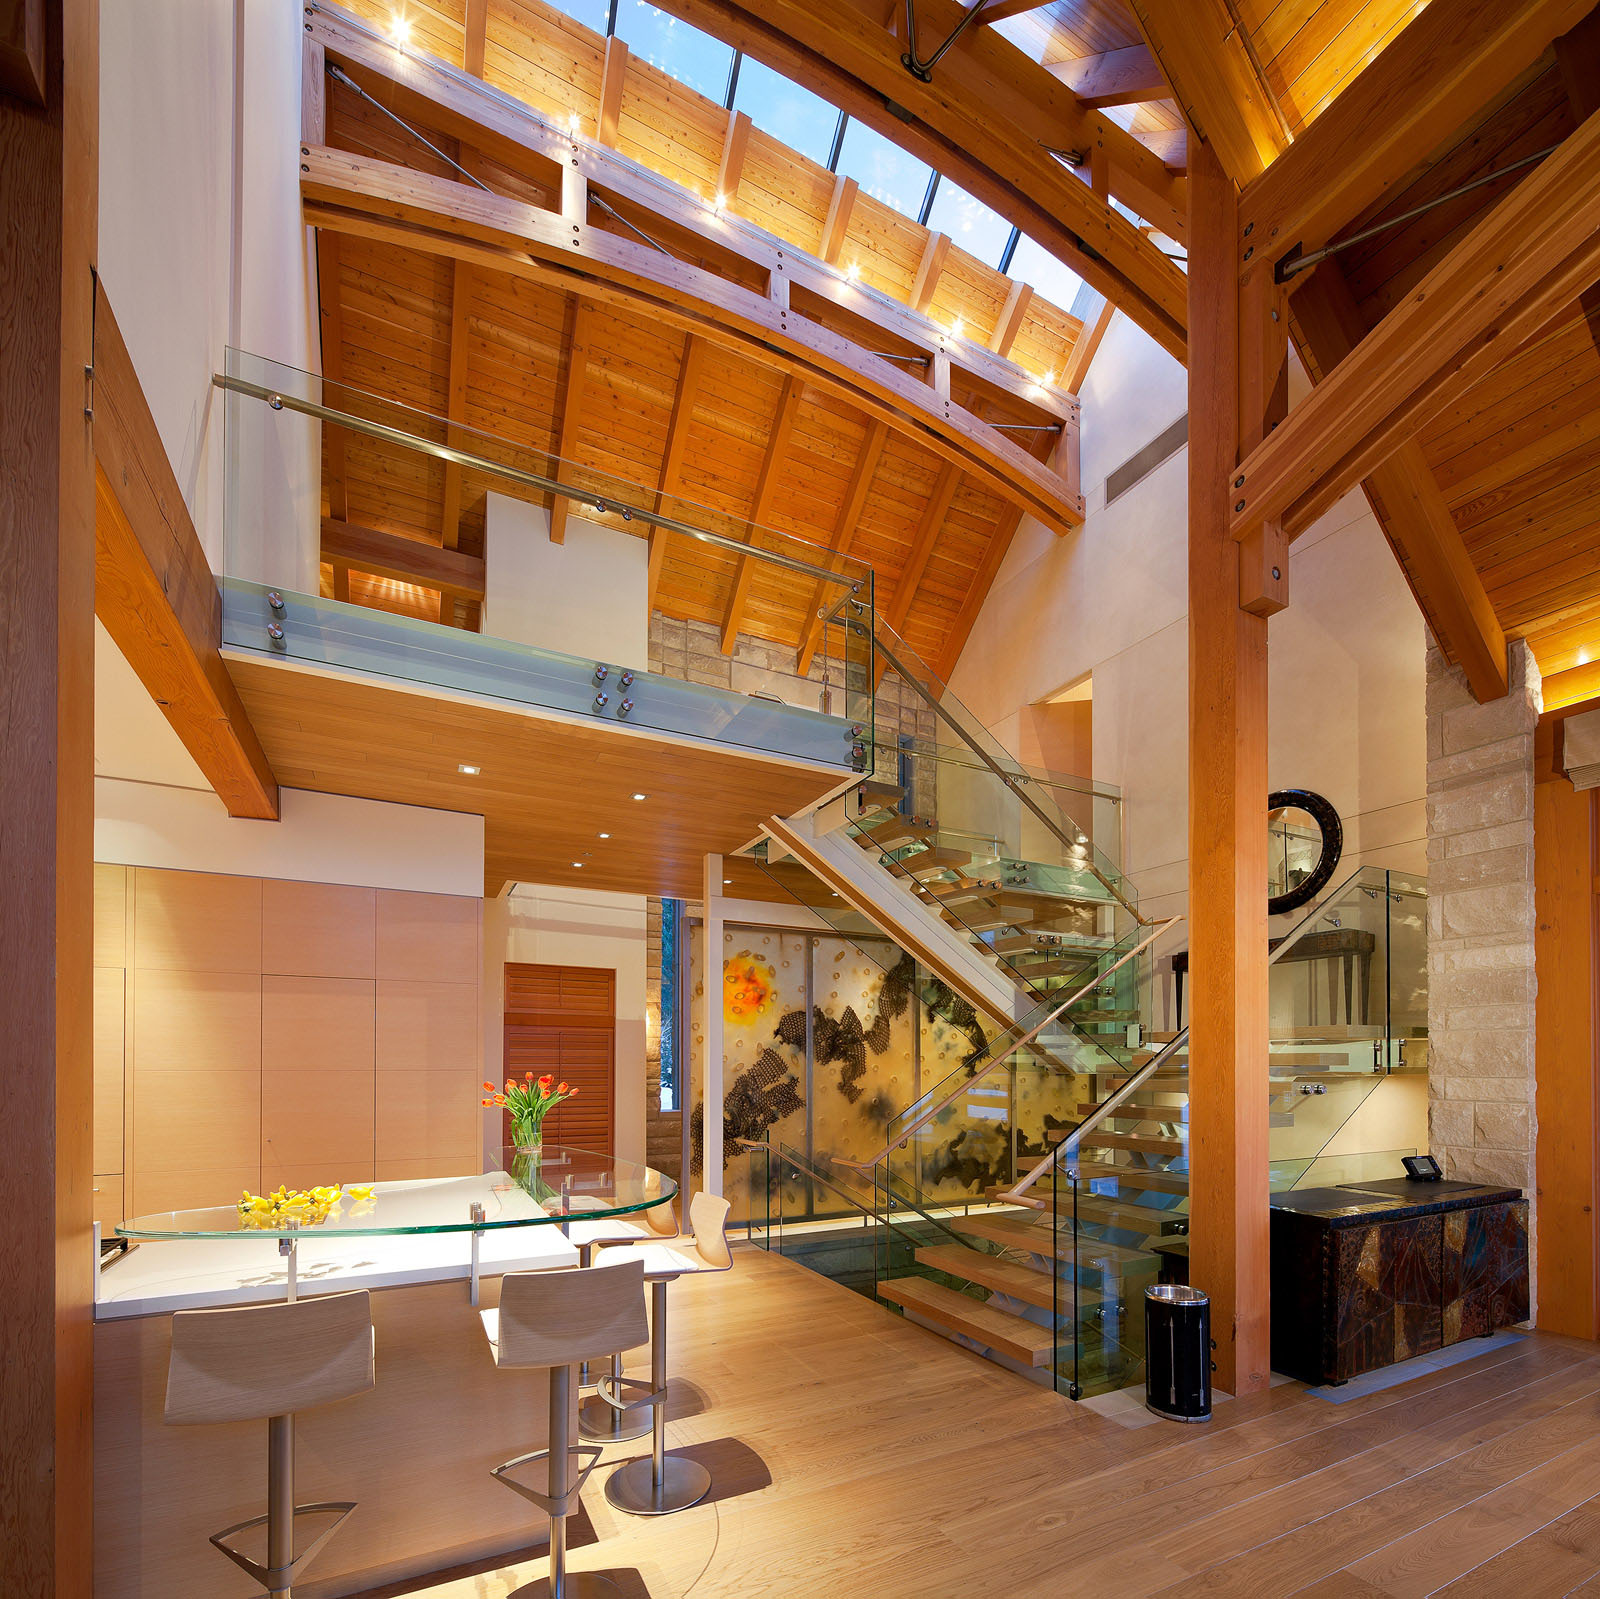 Contemporary House Interior Designs: Kadenwood-Timber-Frame-Home_1